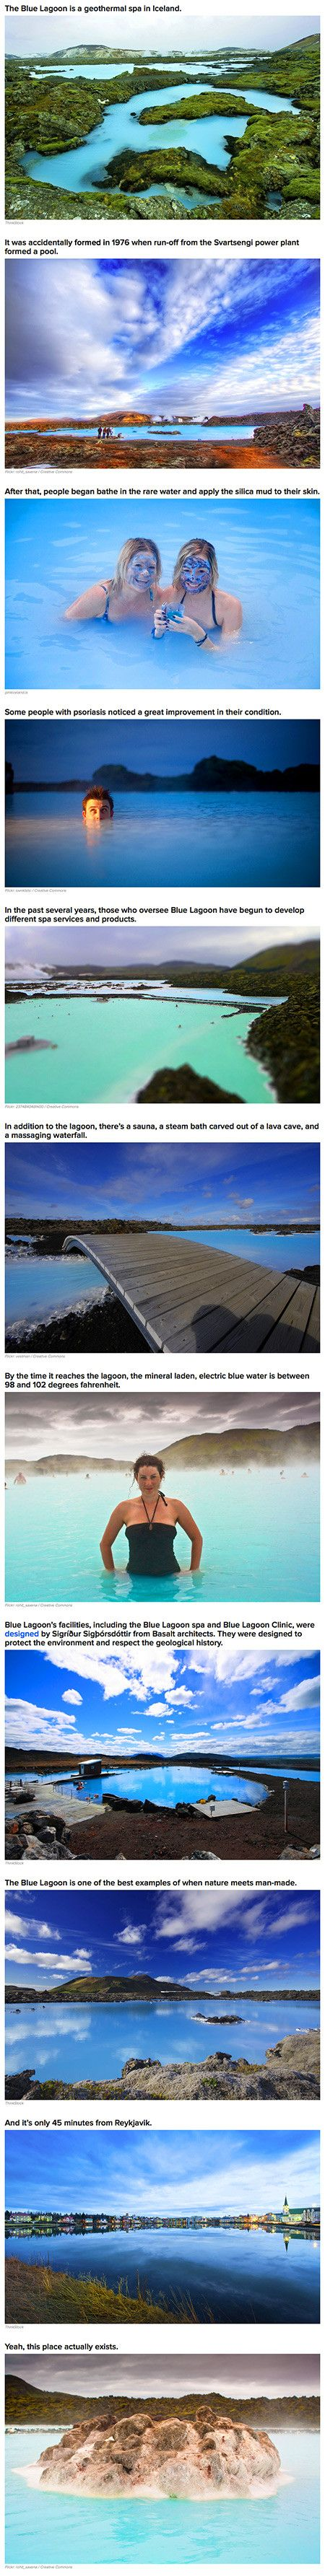 The Blue Lagoon in Iceland is freaking amazing. The 8th wonder of the world.